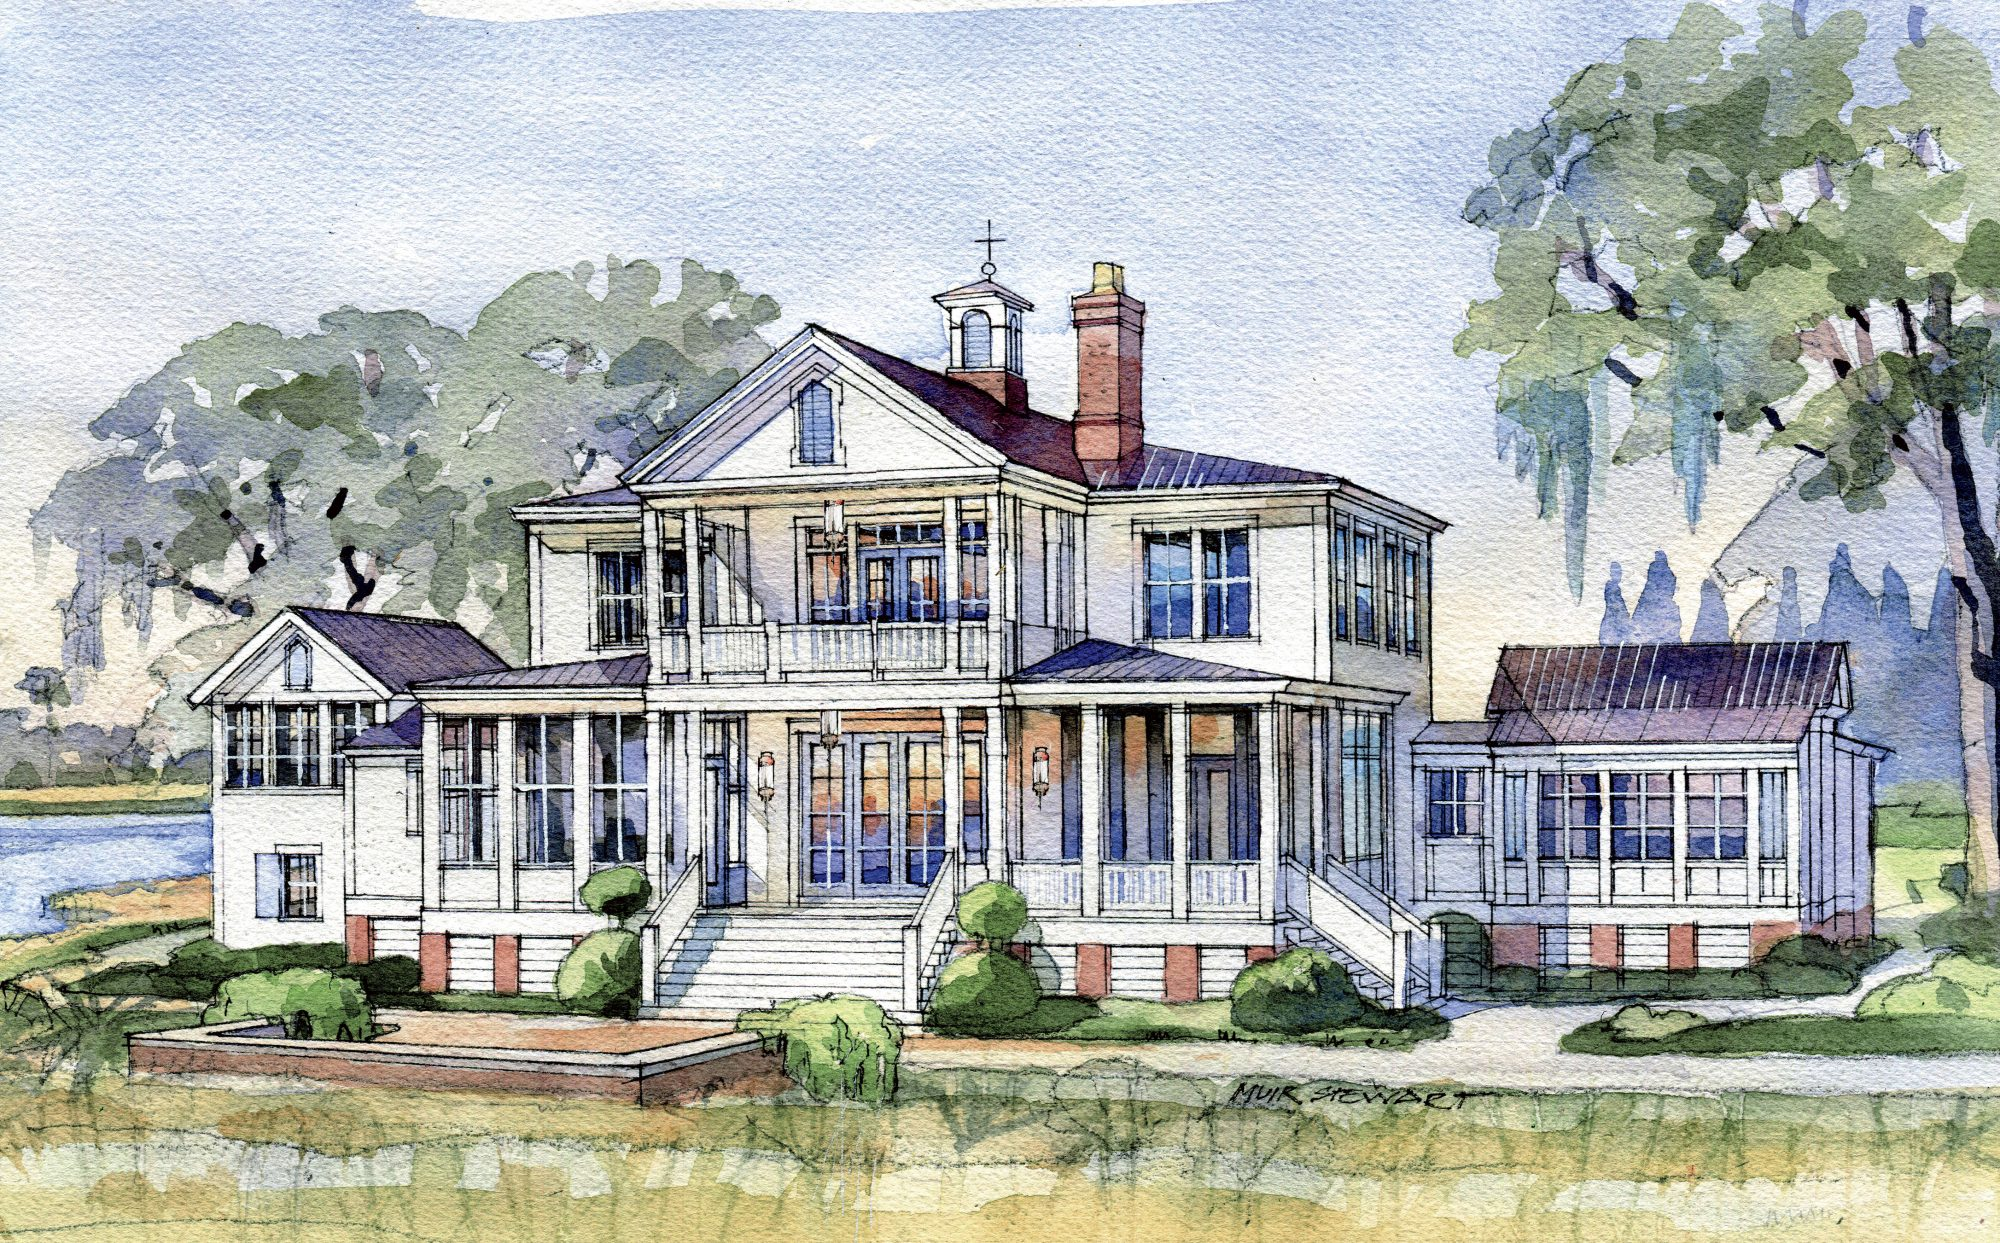 2019 Idea House Rendering Back View